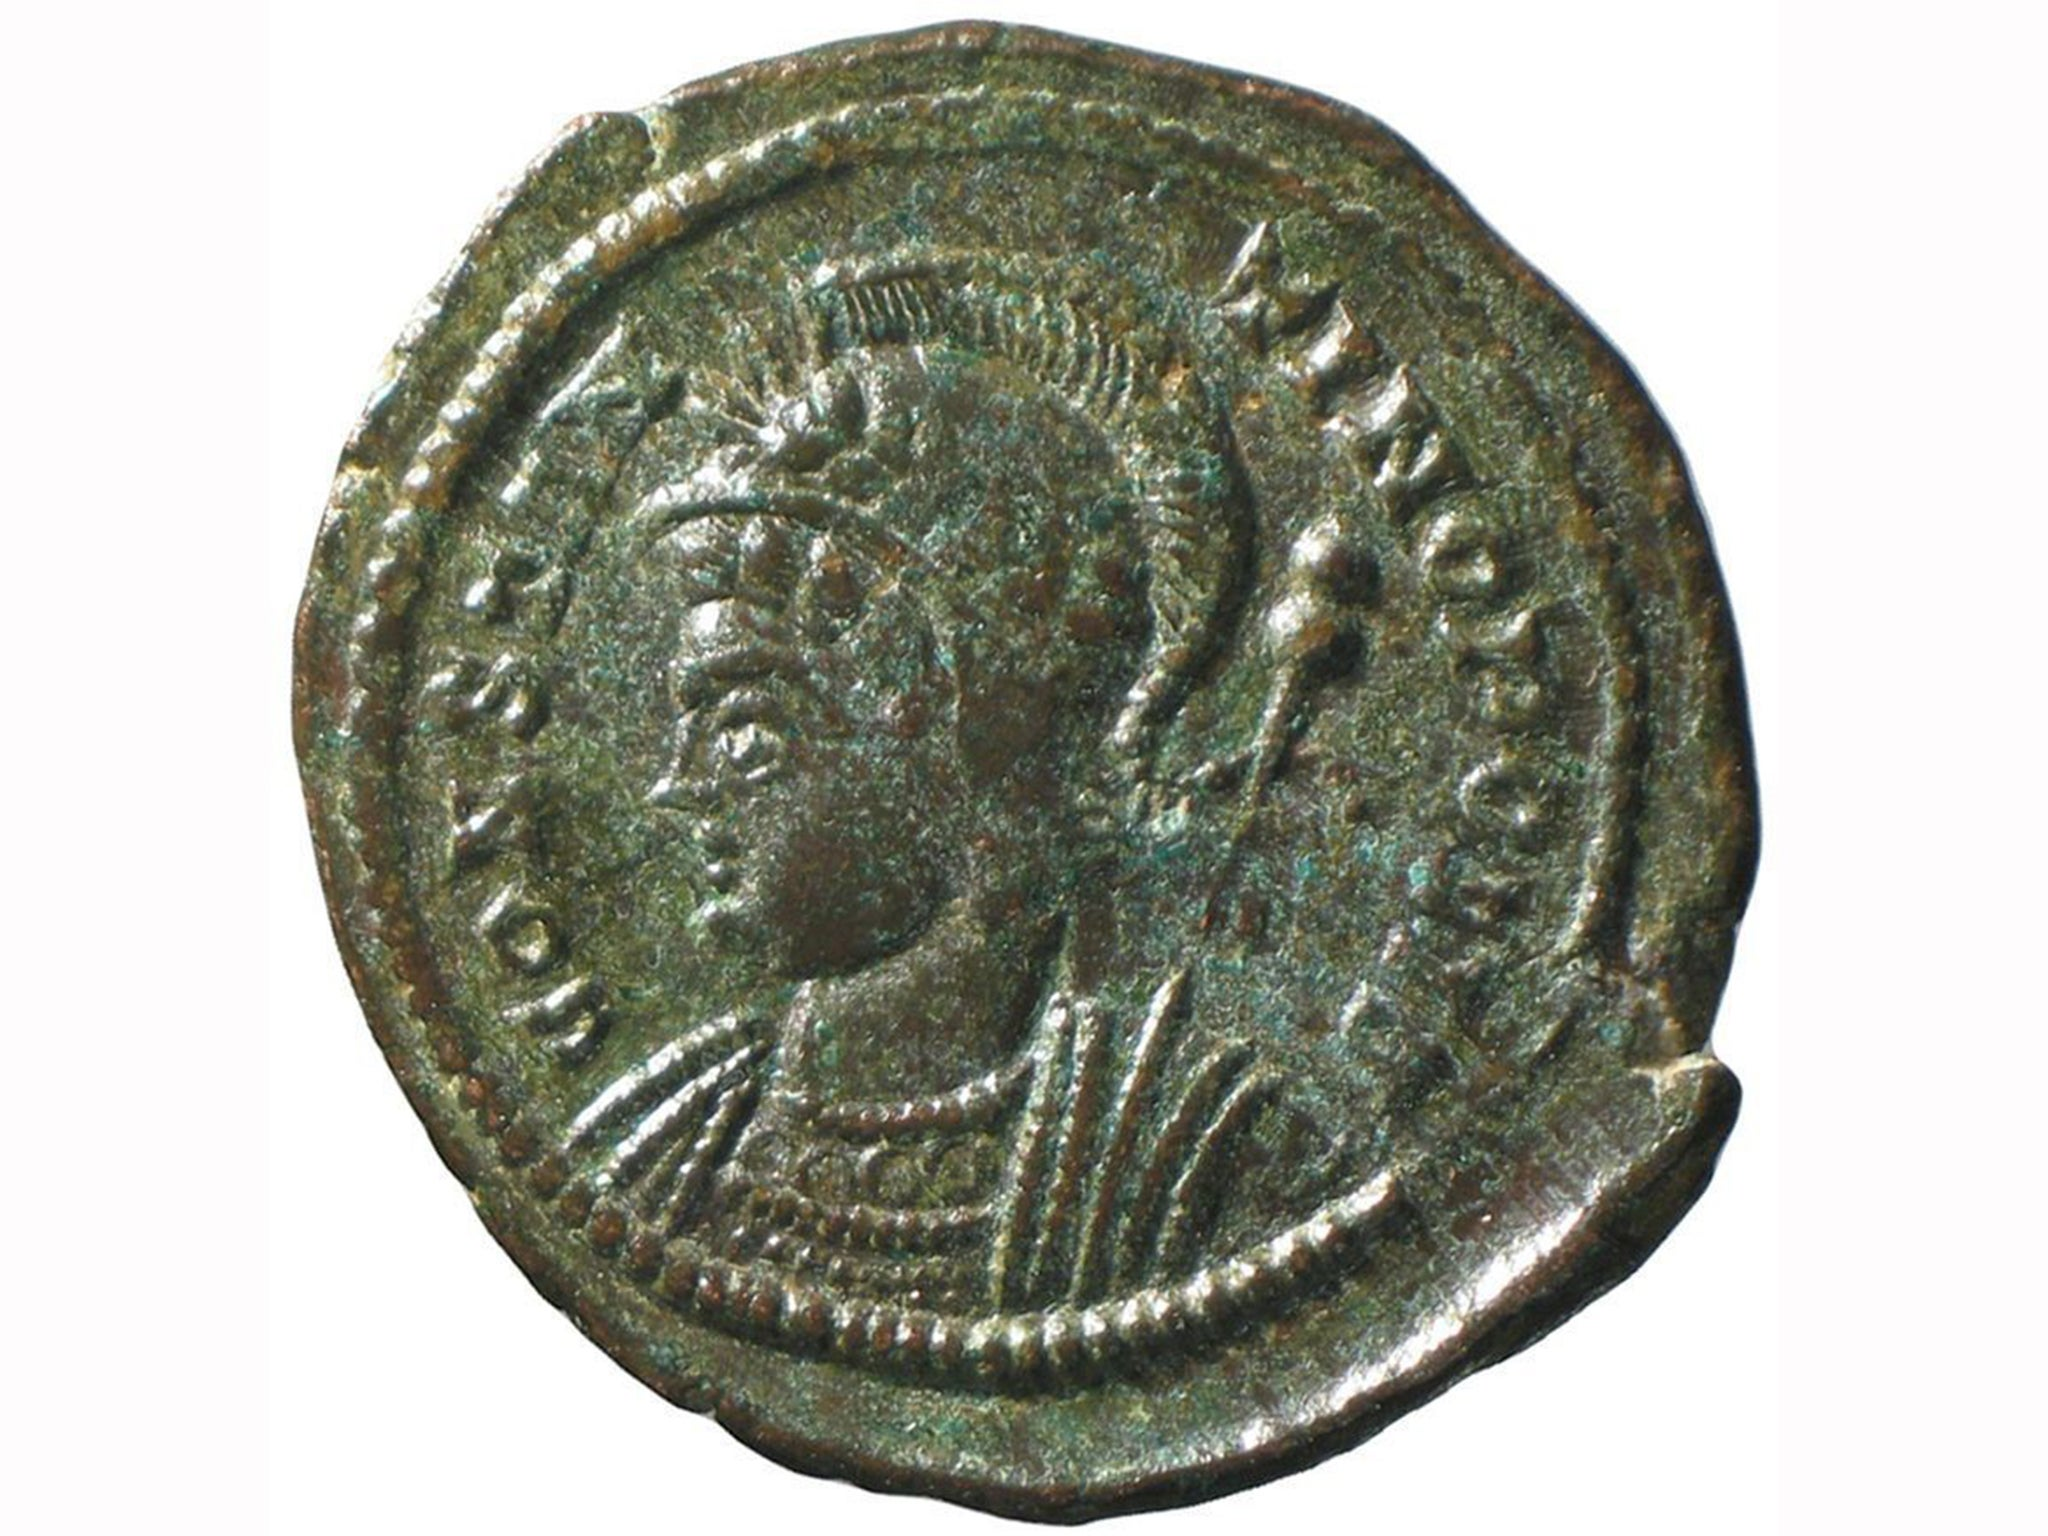 The Seaton Down Hoard: Amateur metal detector uncovers 22,000 Roman coins